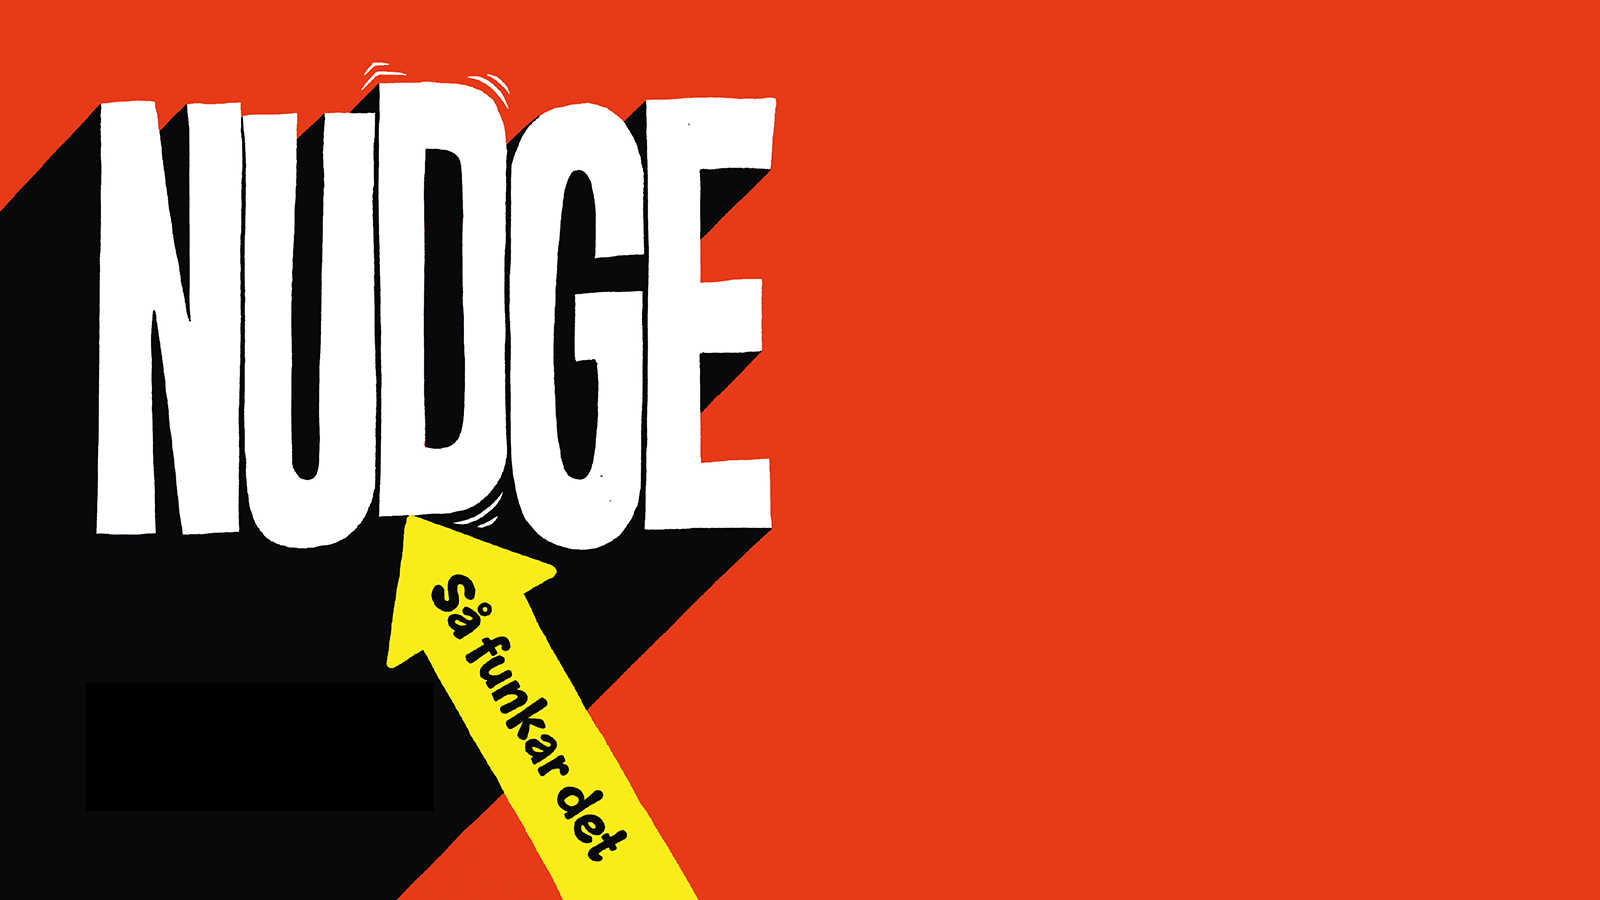 Nudge_Cover_new2.indd